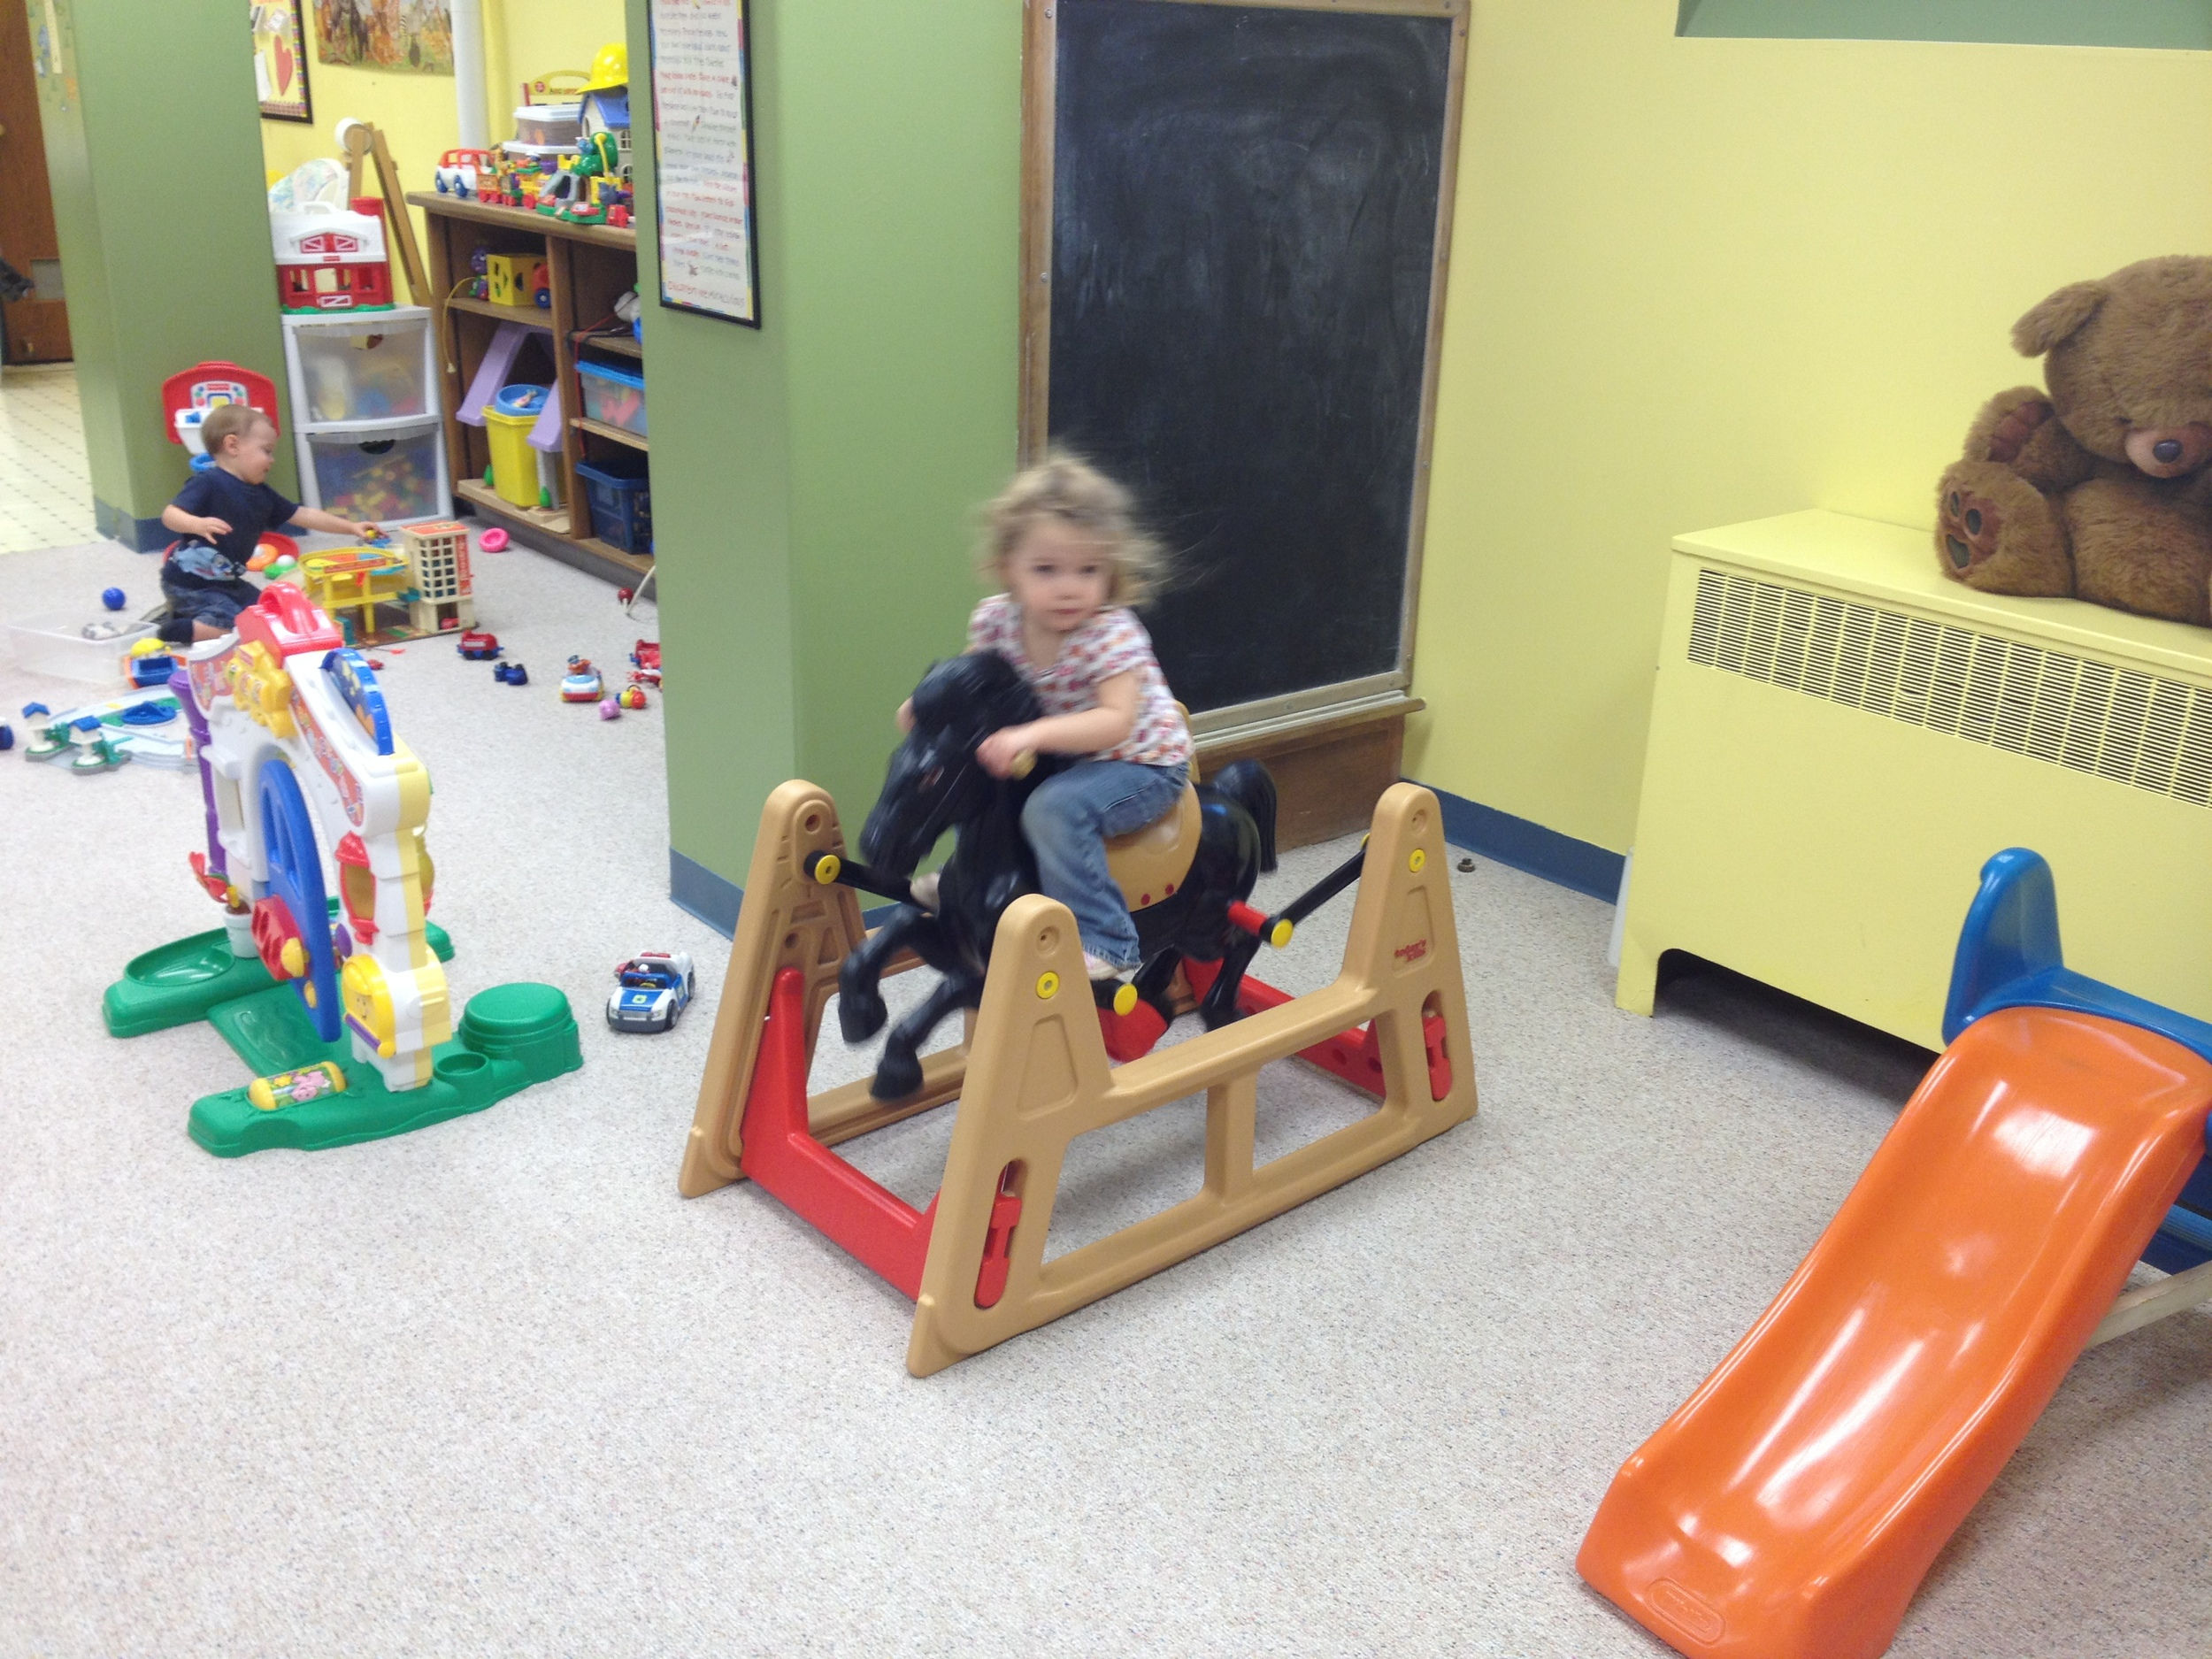 Maddie spending some quality time in the nursery. Pardon the blur she was really giving the horse a workout.